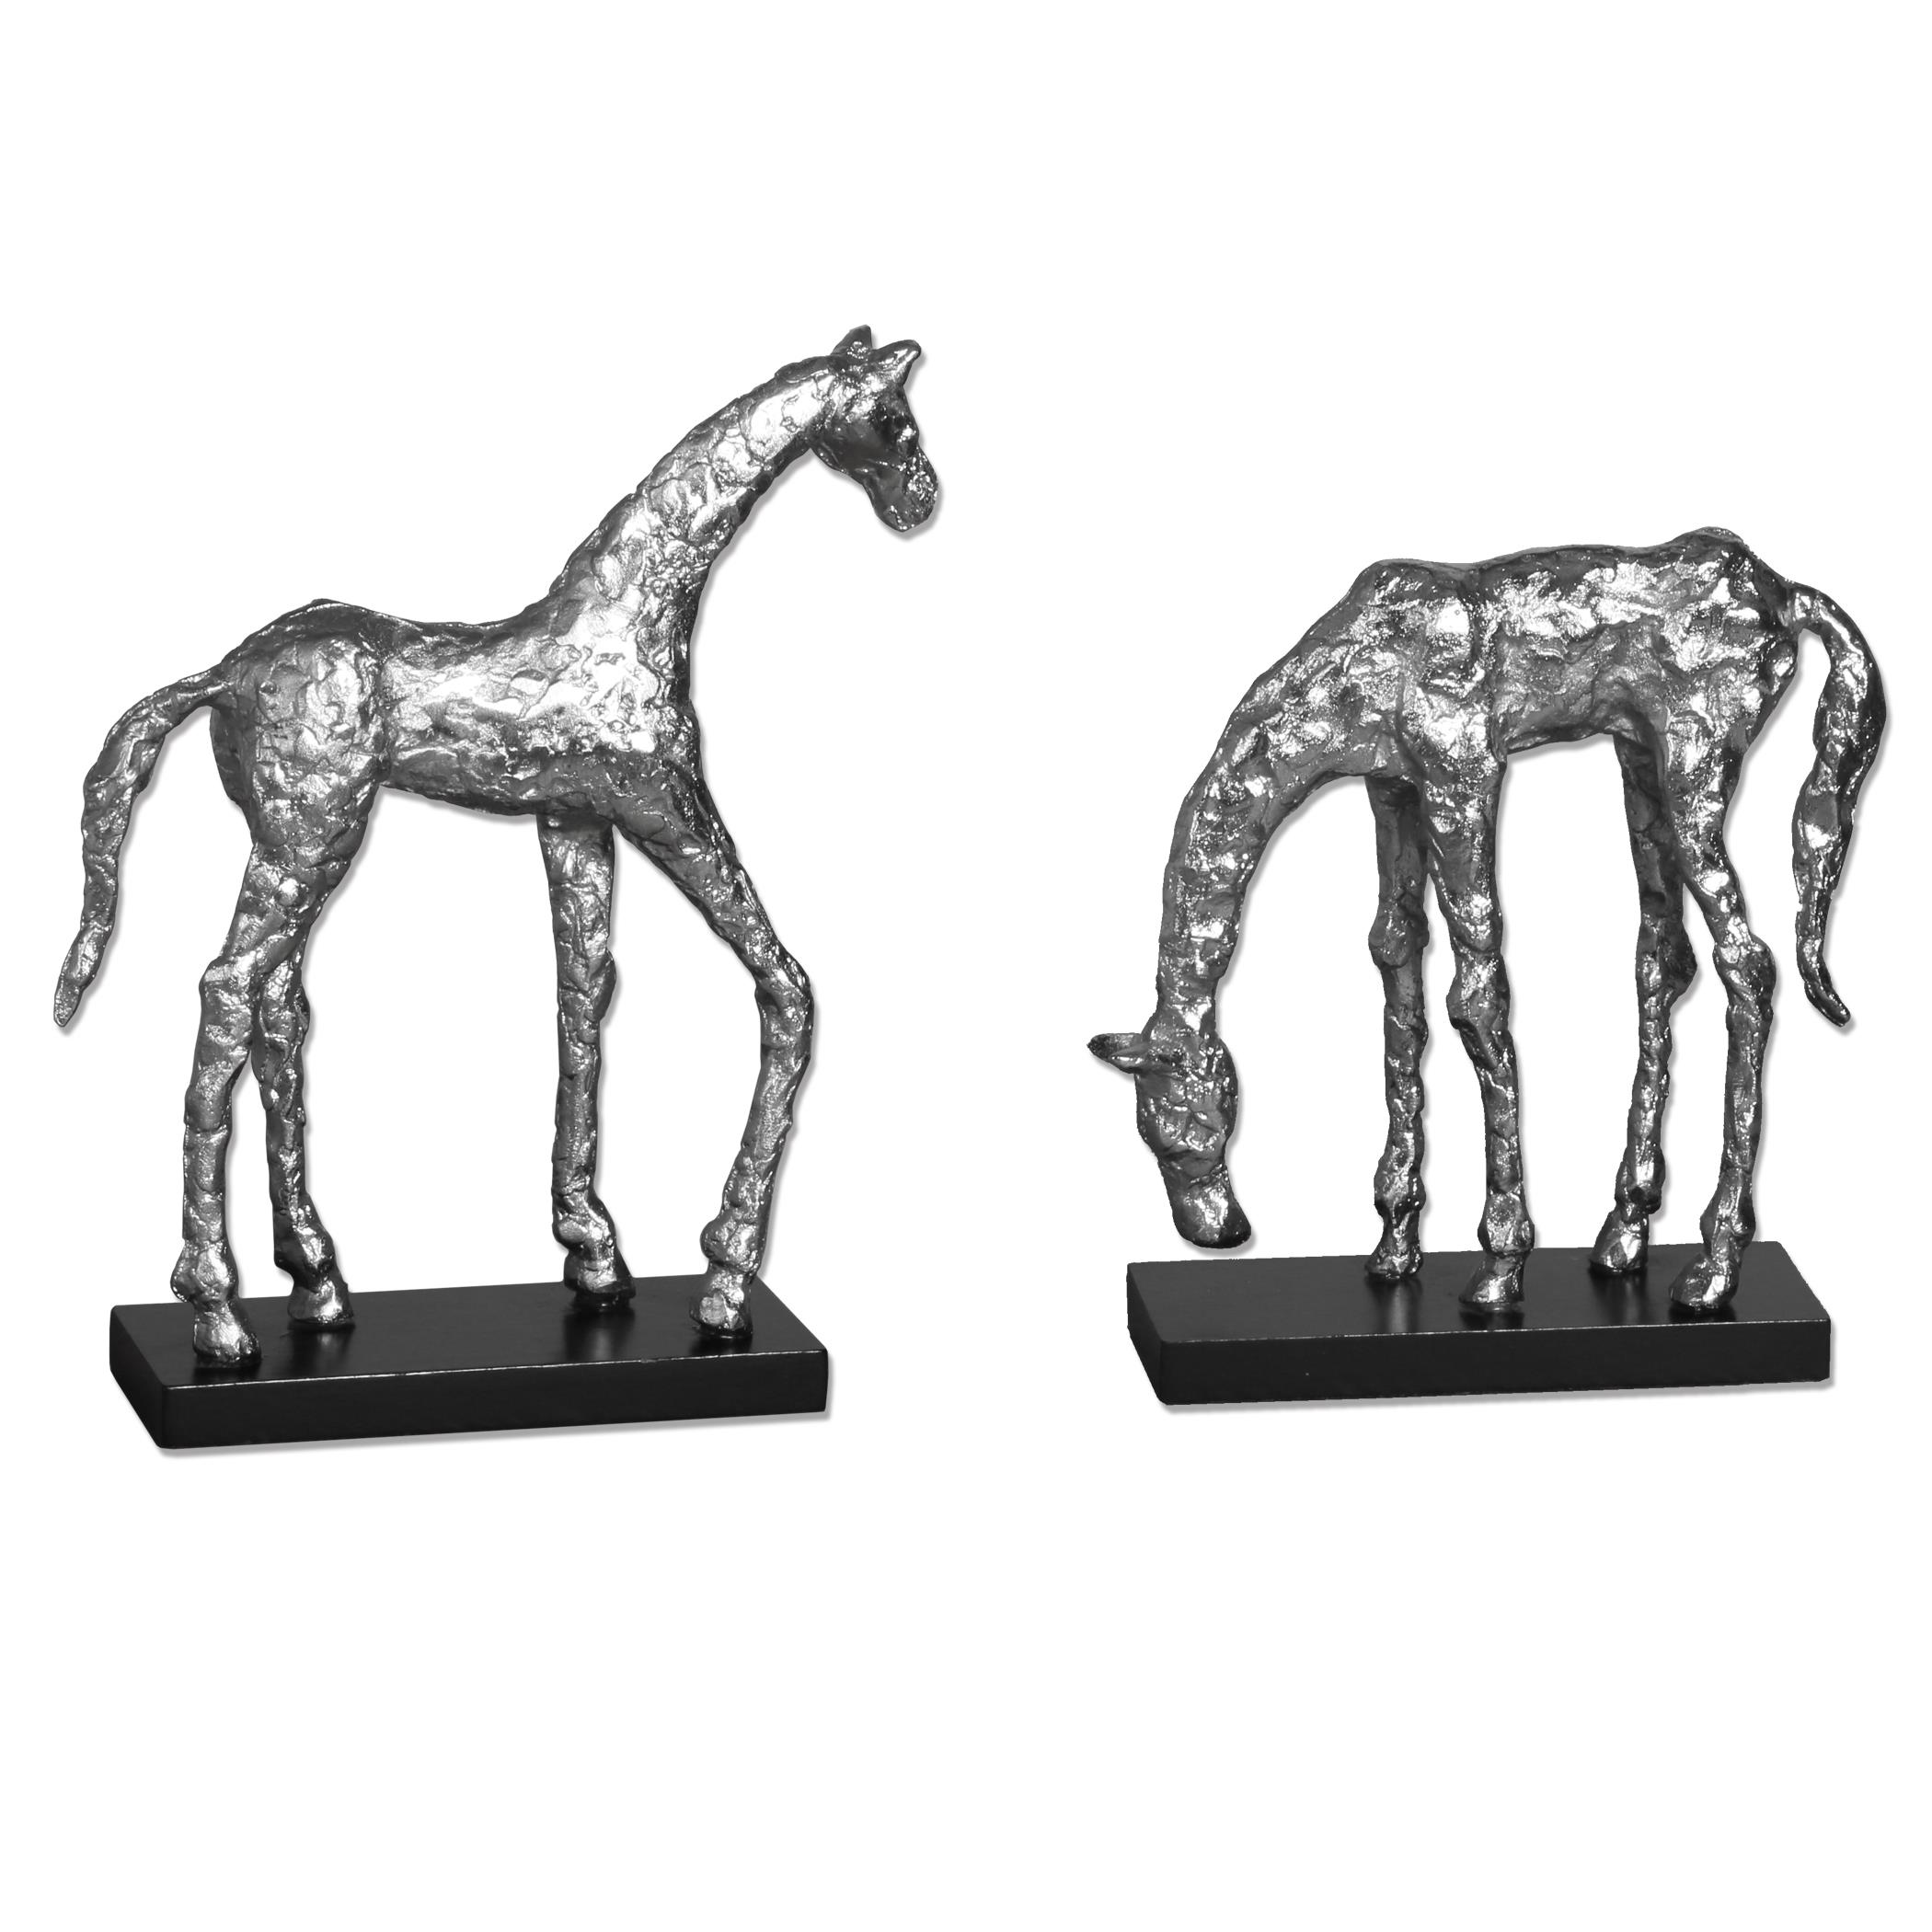 Accessories - Statues and Figurines Let's Graze Horse Statues, S/2 by Uttermost at Mueller Furniture